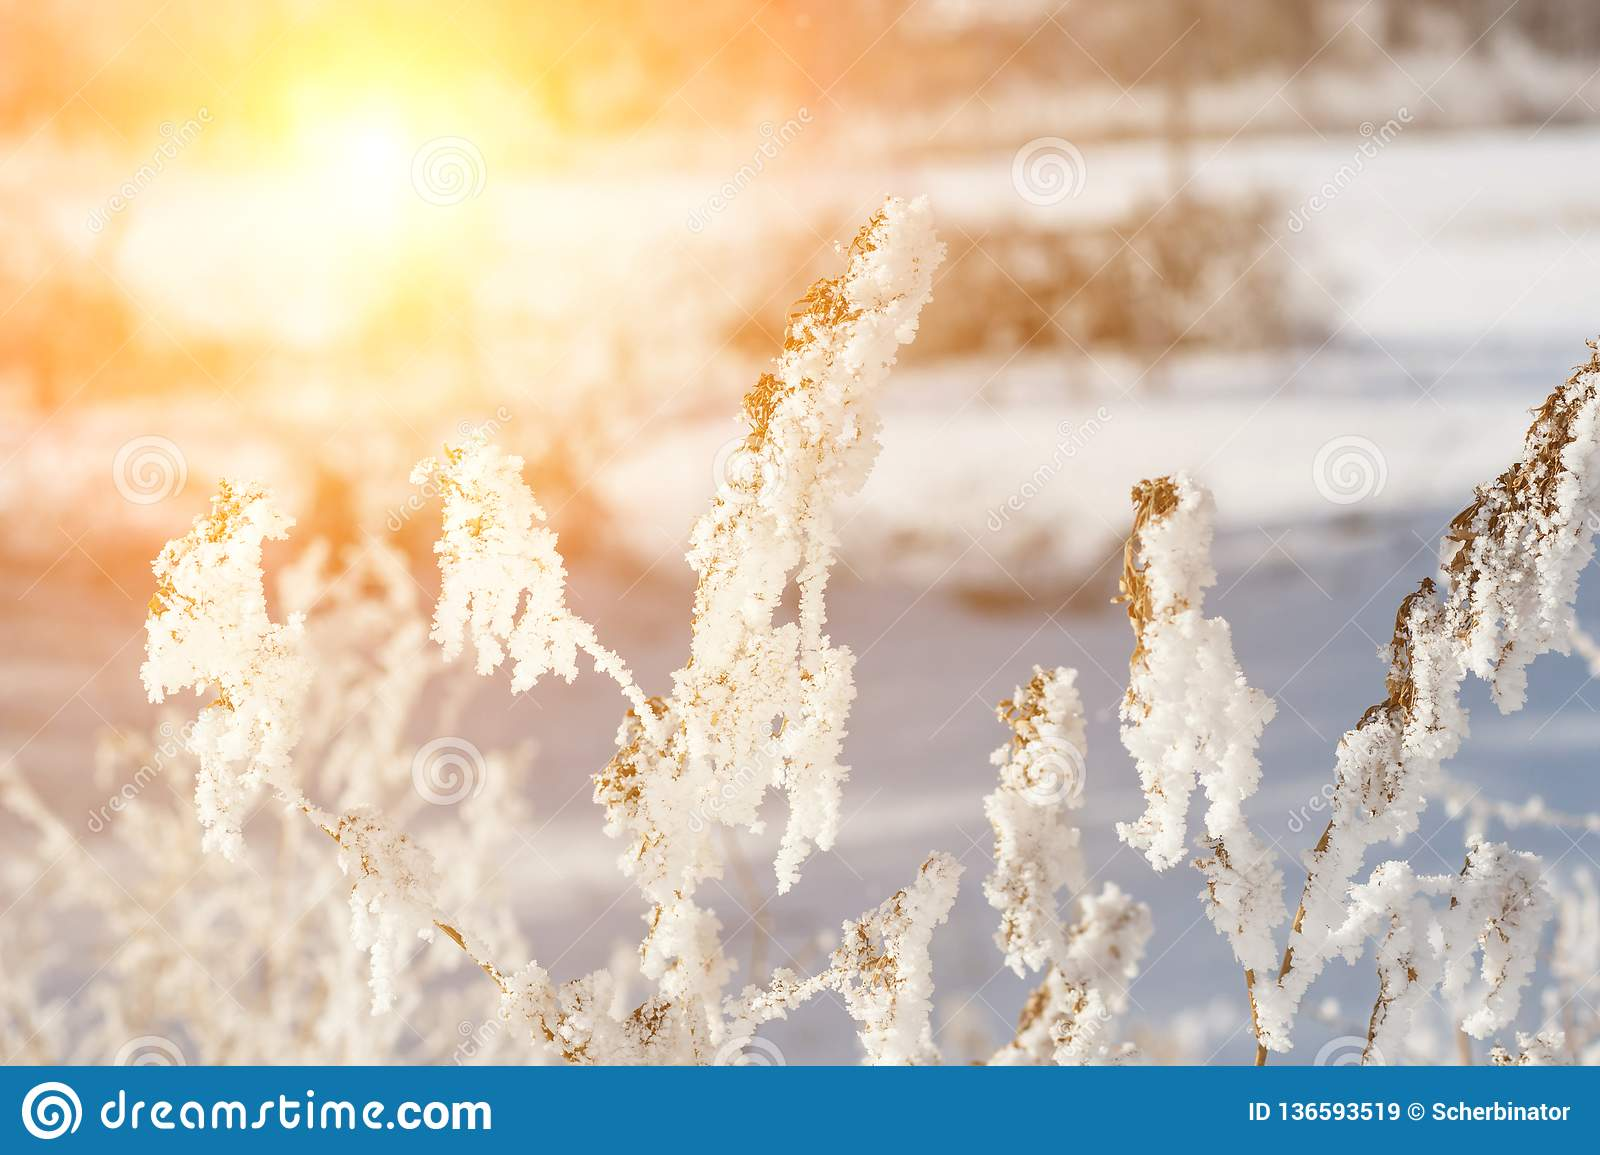 beautiful winter landscape with snow plant, trees and sunrise. winterly morning of a new day. purple winter landscape with sunset